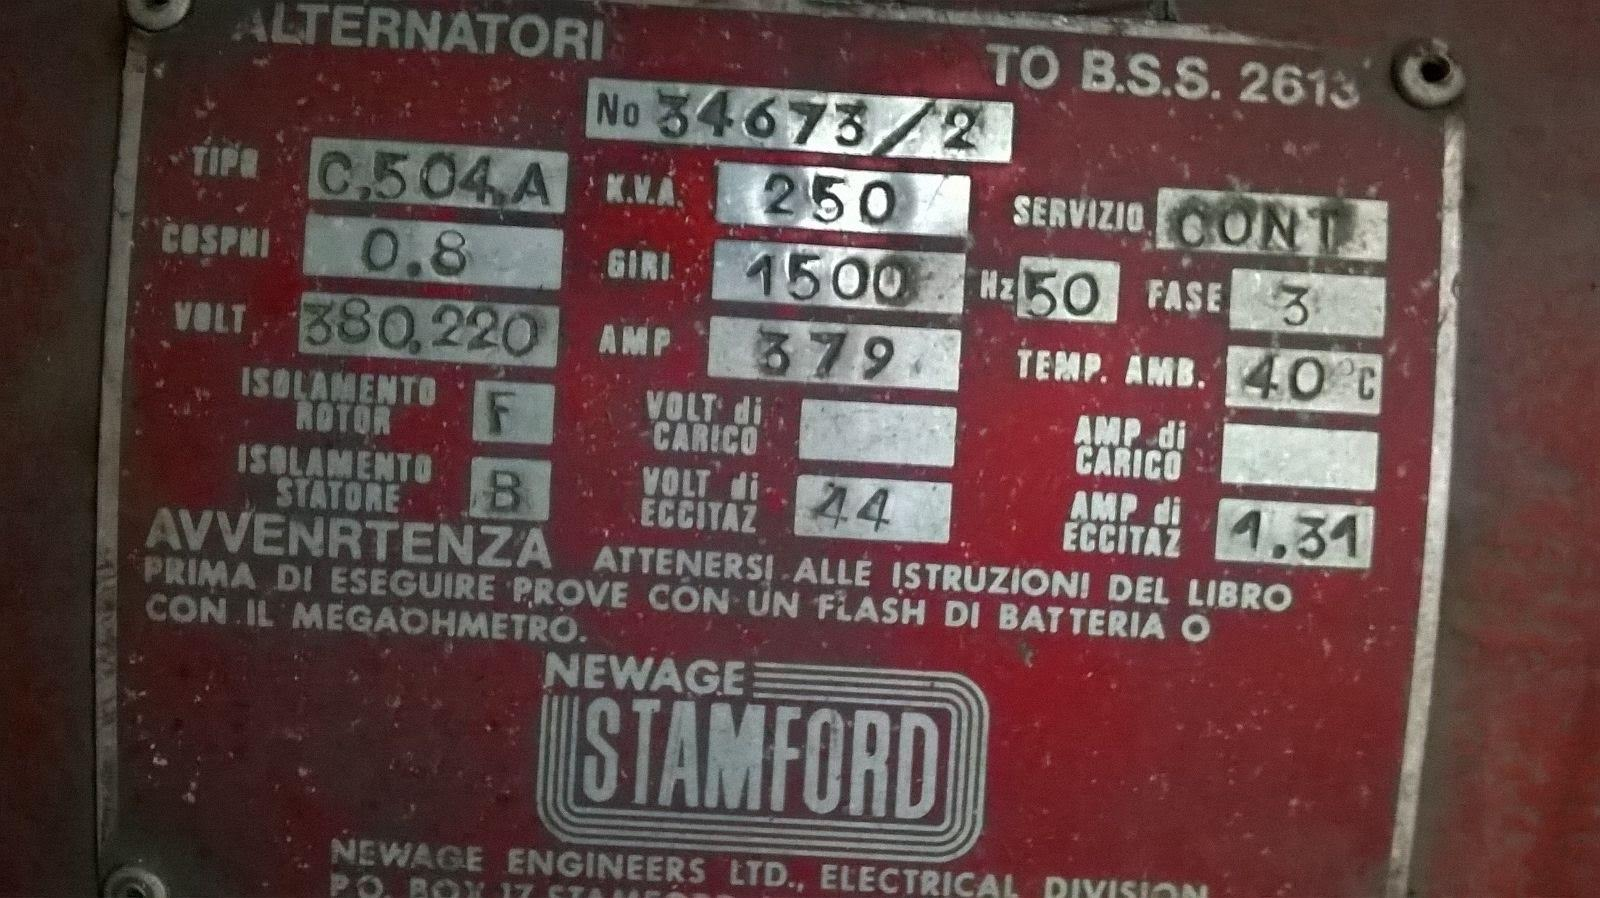 Stamford Newage Alternators Alternator Wiring Diagram P Instructions Iec34 350 Series 305 0824 Silent Open Style Canopies Find Asap Formerly Available Single Three Wire Reconnectable Winding